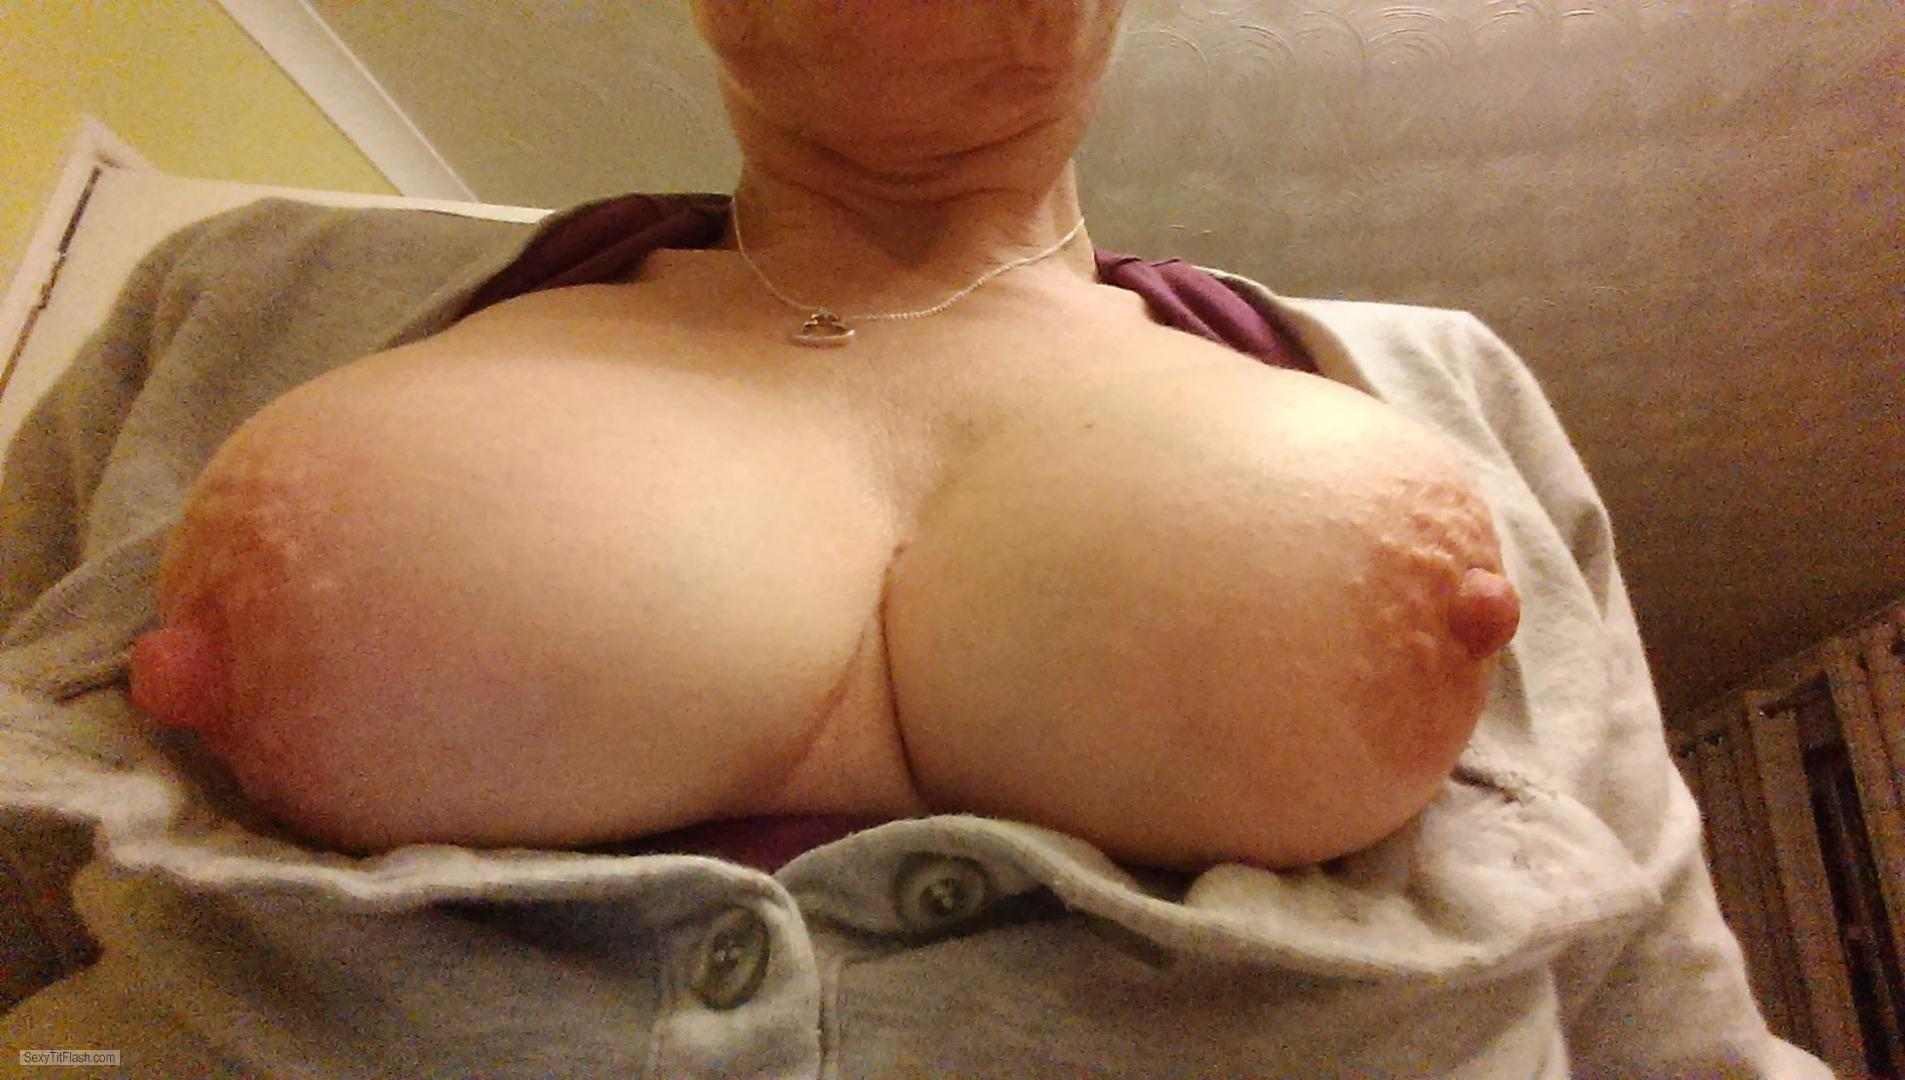 Tit Flash: My Medium Tits (Selfie) - A Wife from United Kingdom